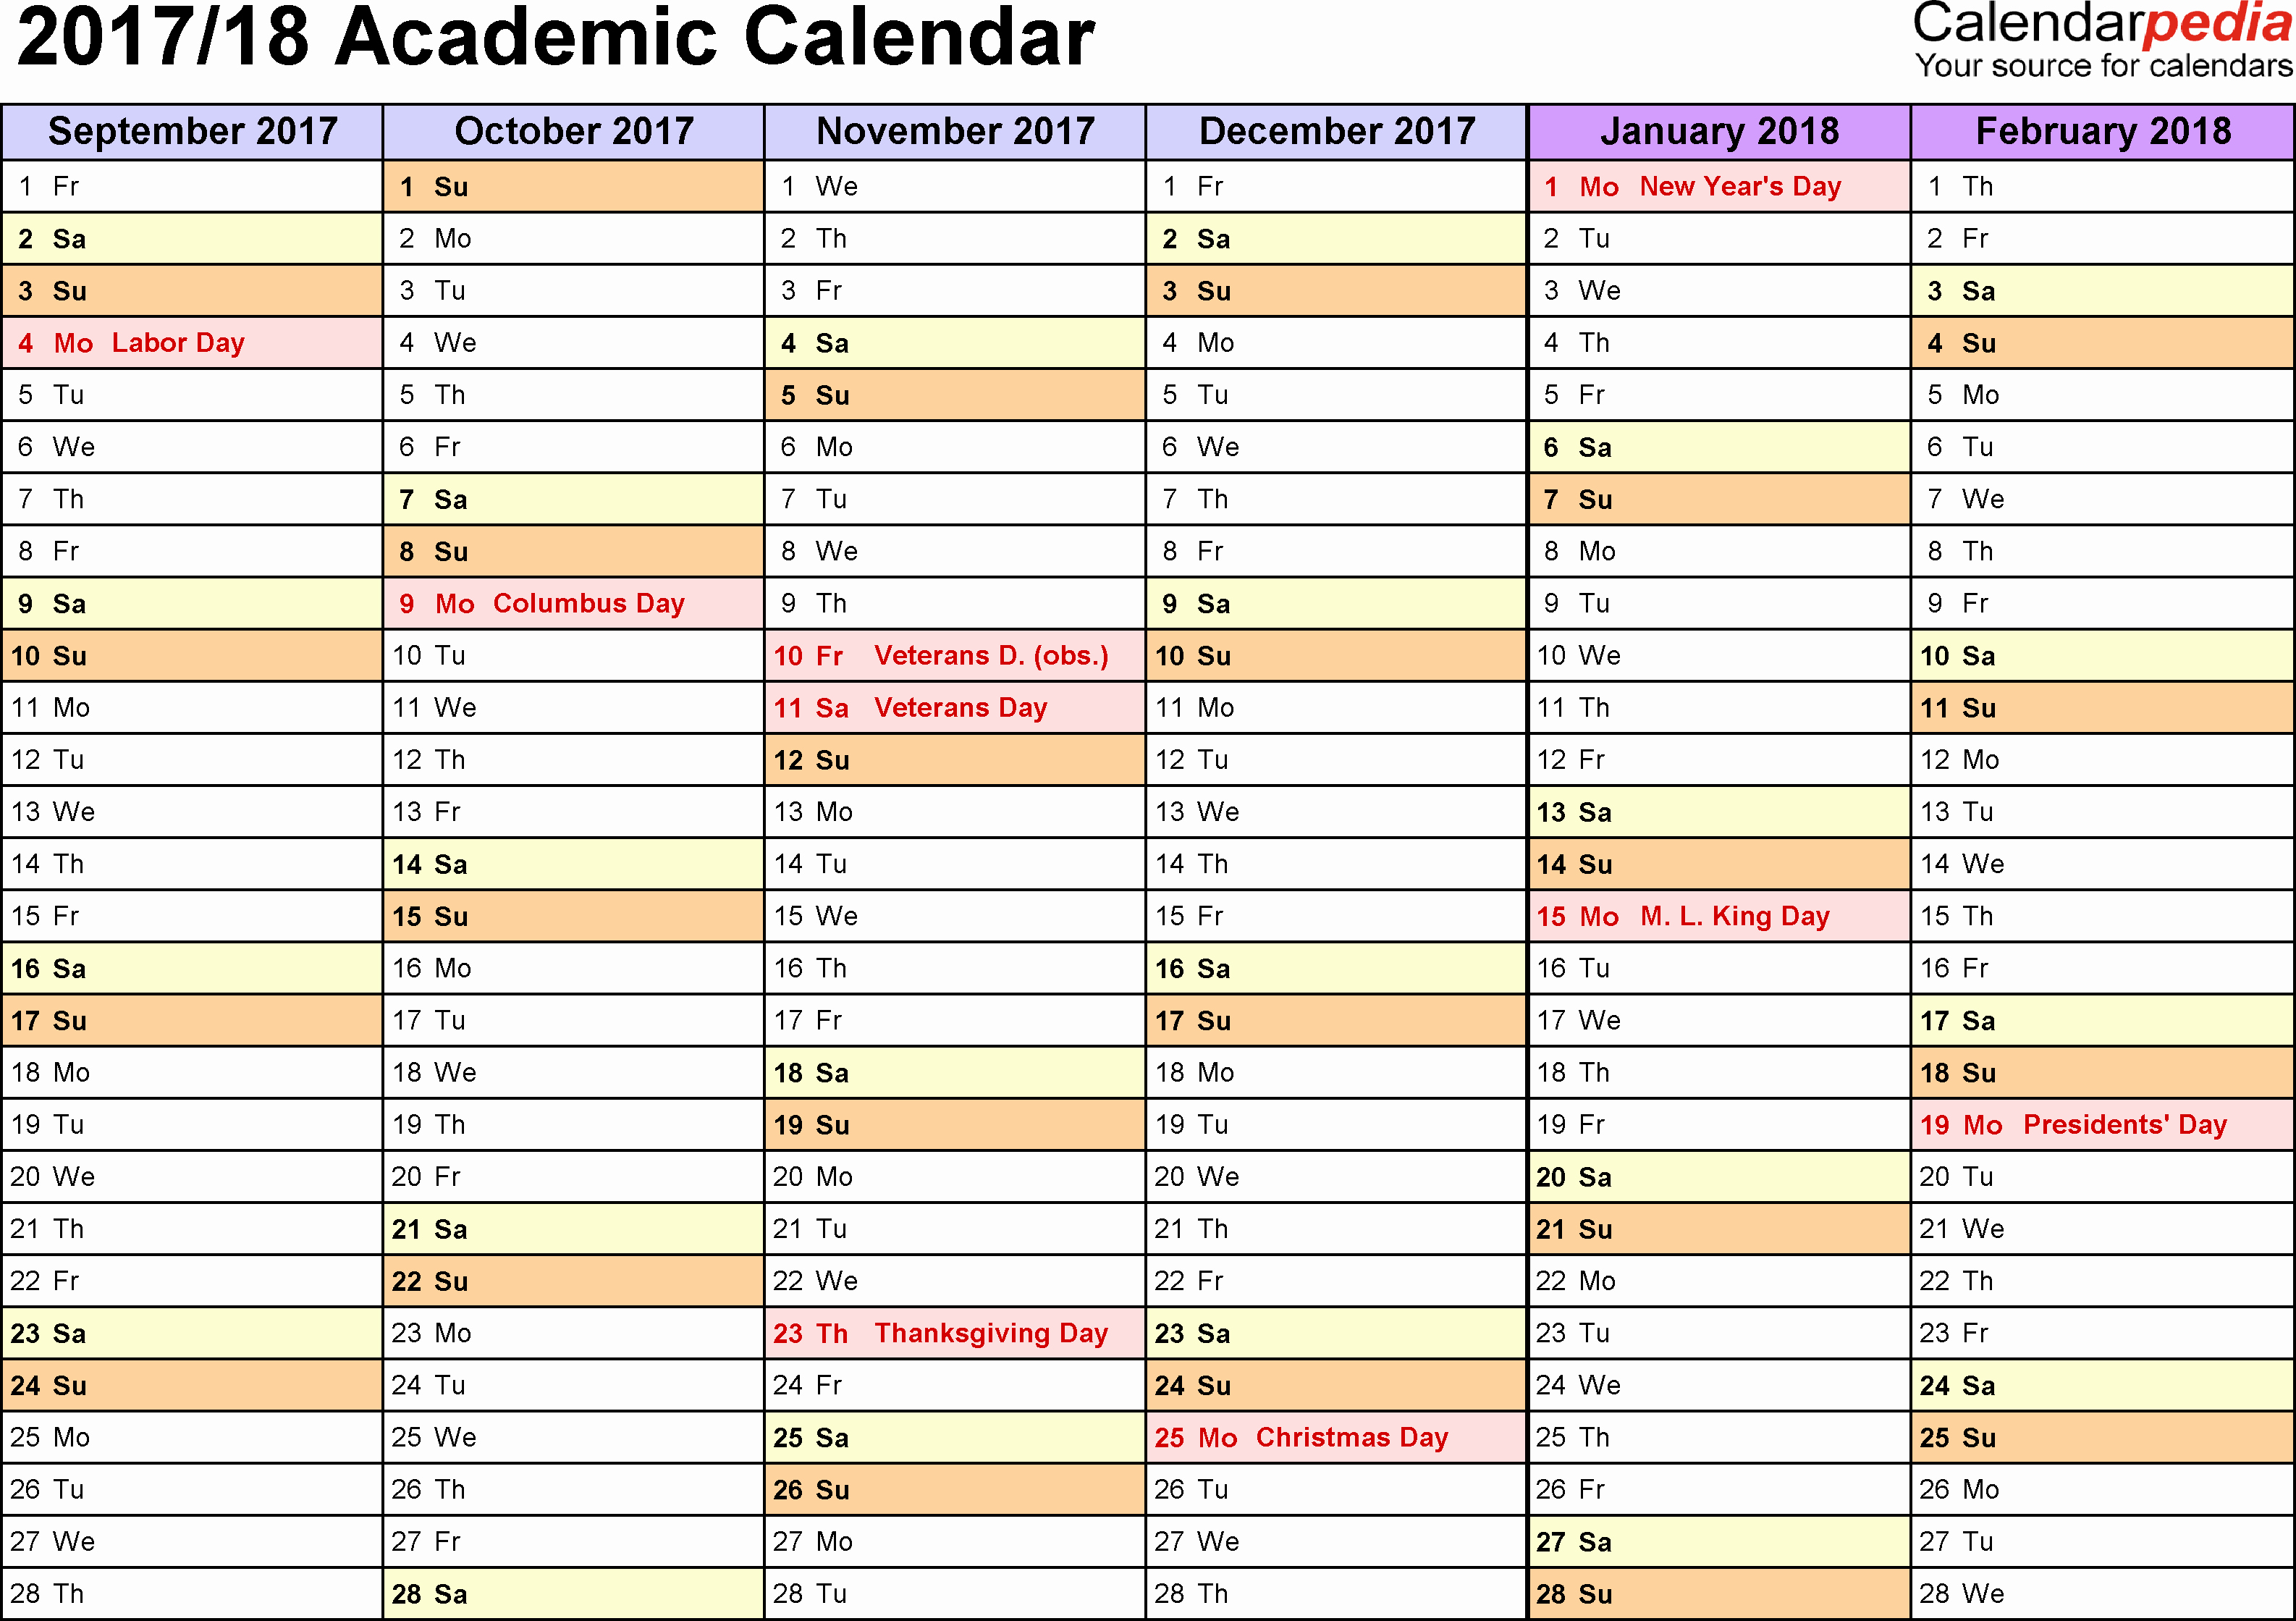 Elementary School Master Schedule Template New Academic Calendars 2017 2018 Free Printable Word Templates